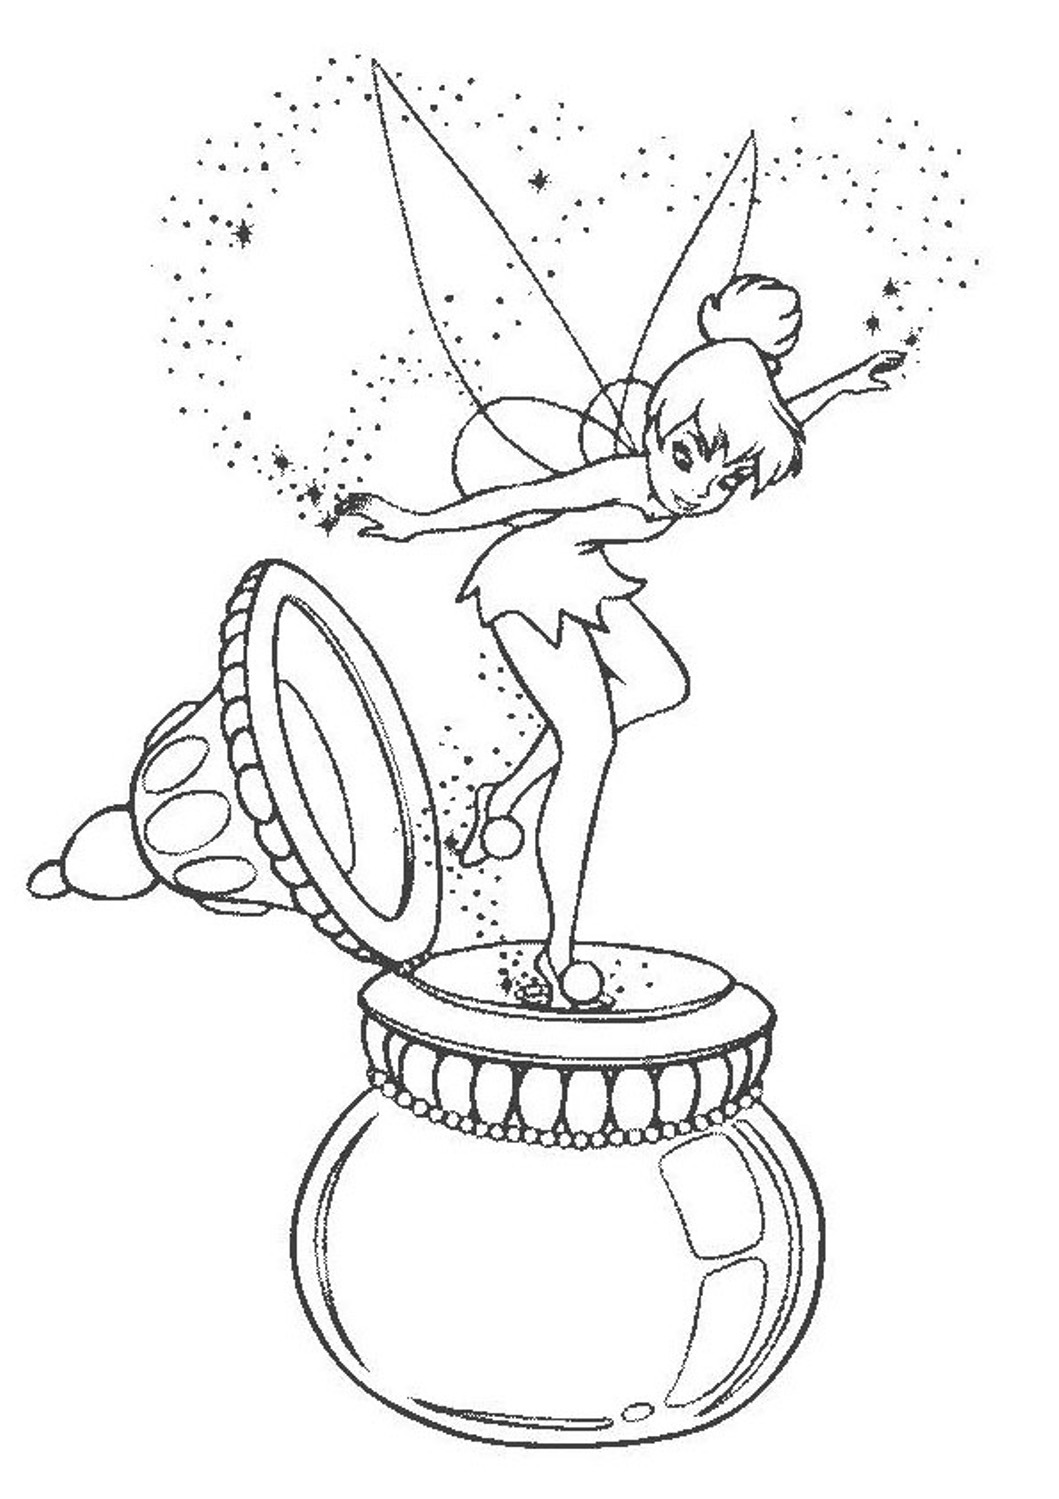 Coloring Pages Tinkerbell Coloring Pages To Print tinker bell coloring pages to download and print for free pages